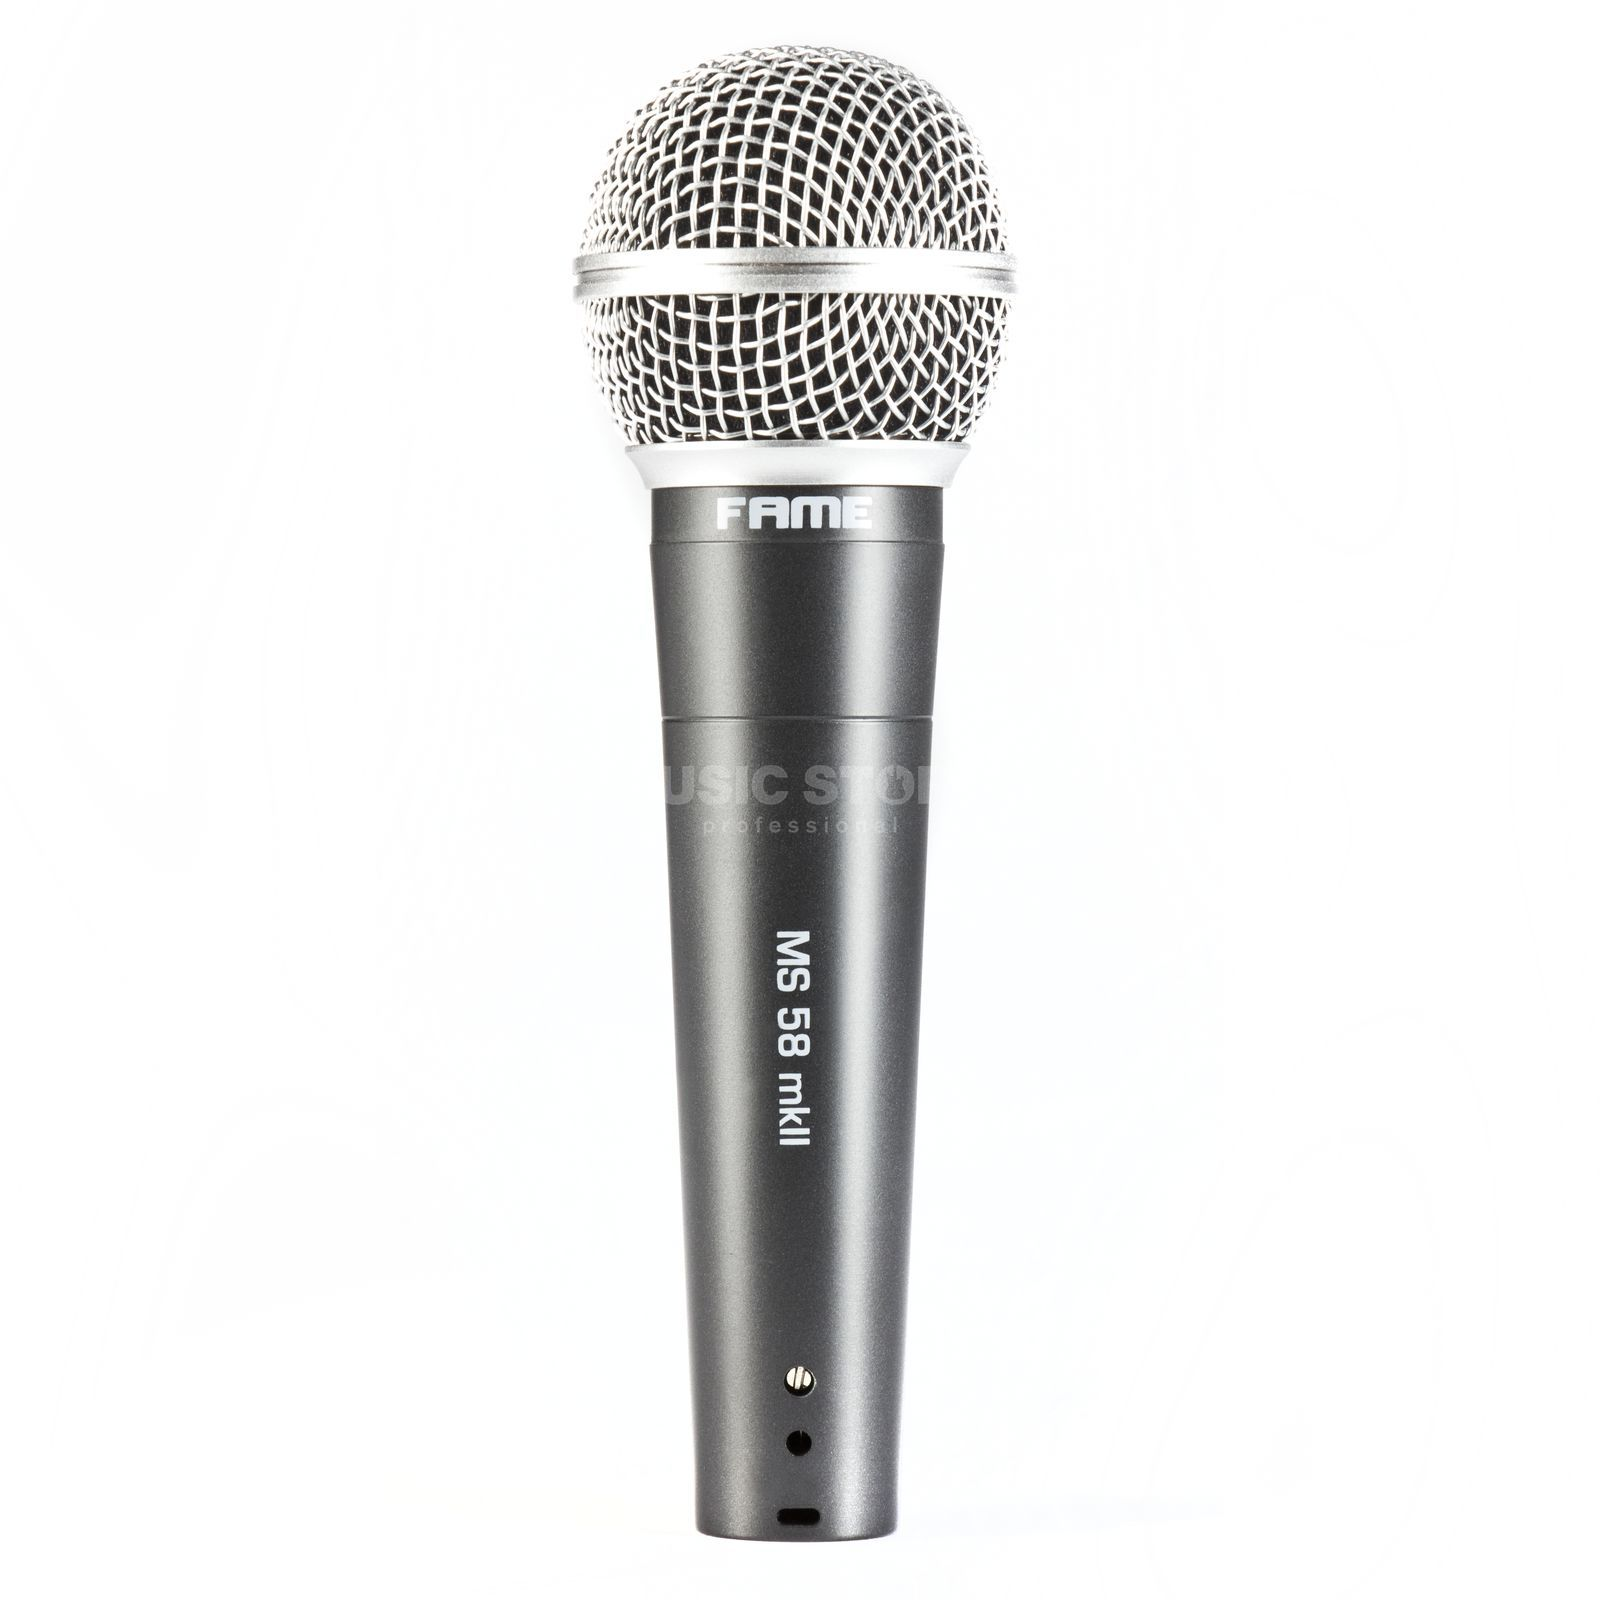 Fame audio MS 58 MKII dynamic Vocalmicrophone Image du produit